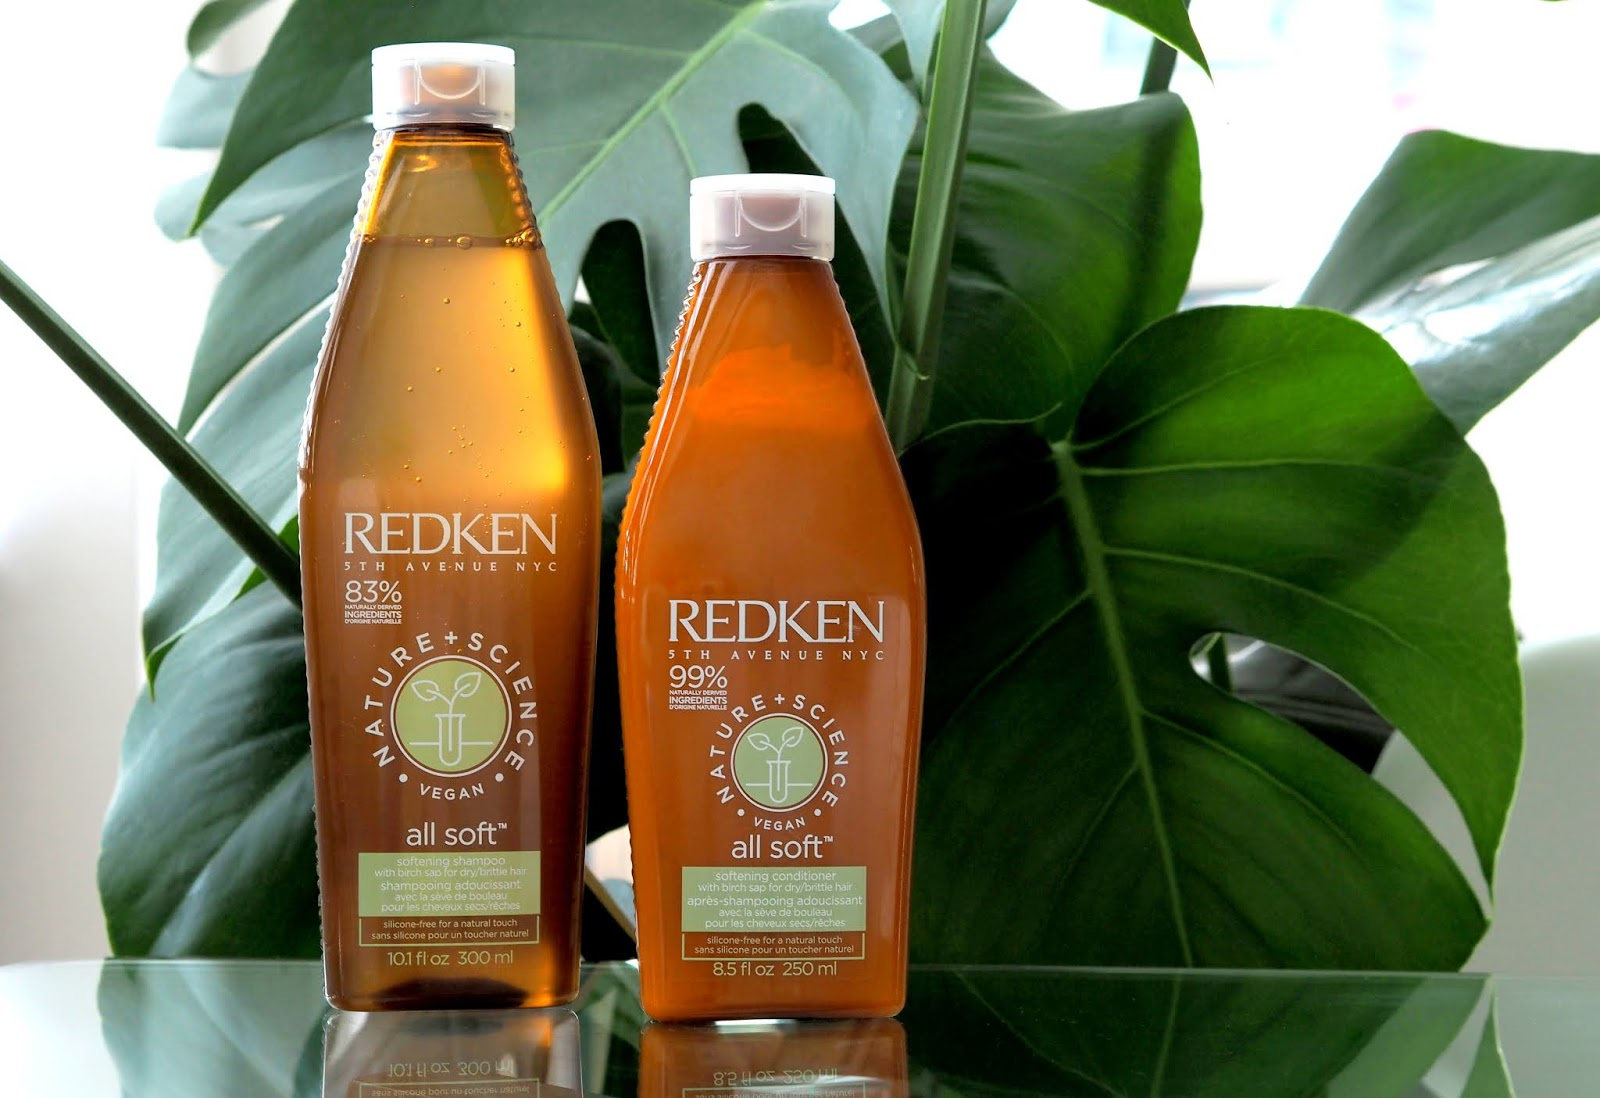 Redken-Nature+Science-All-Soft-Shampoo-Conditioner-review